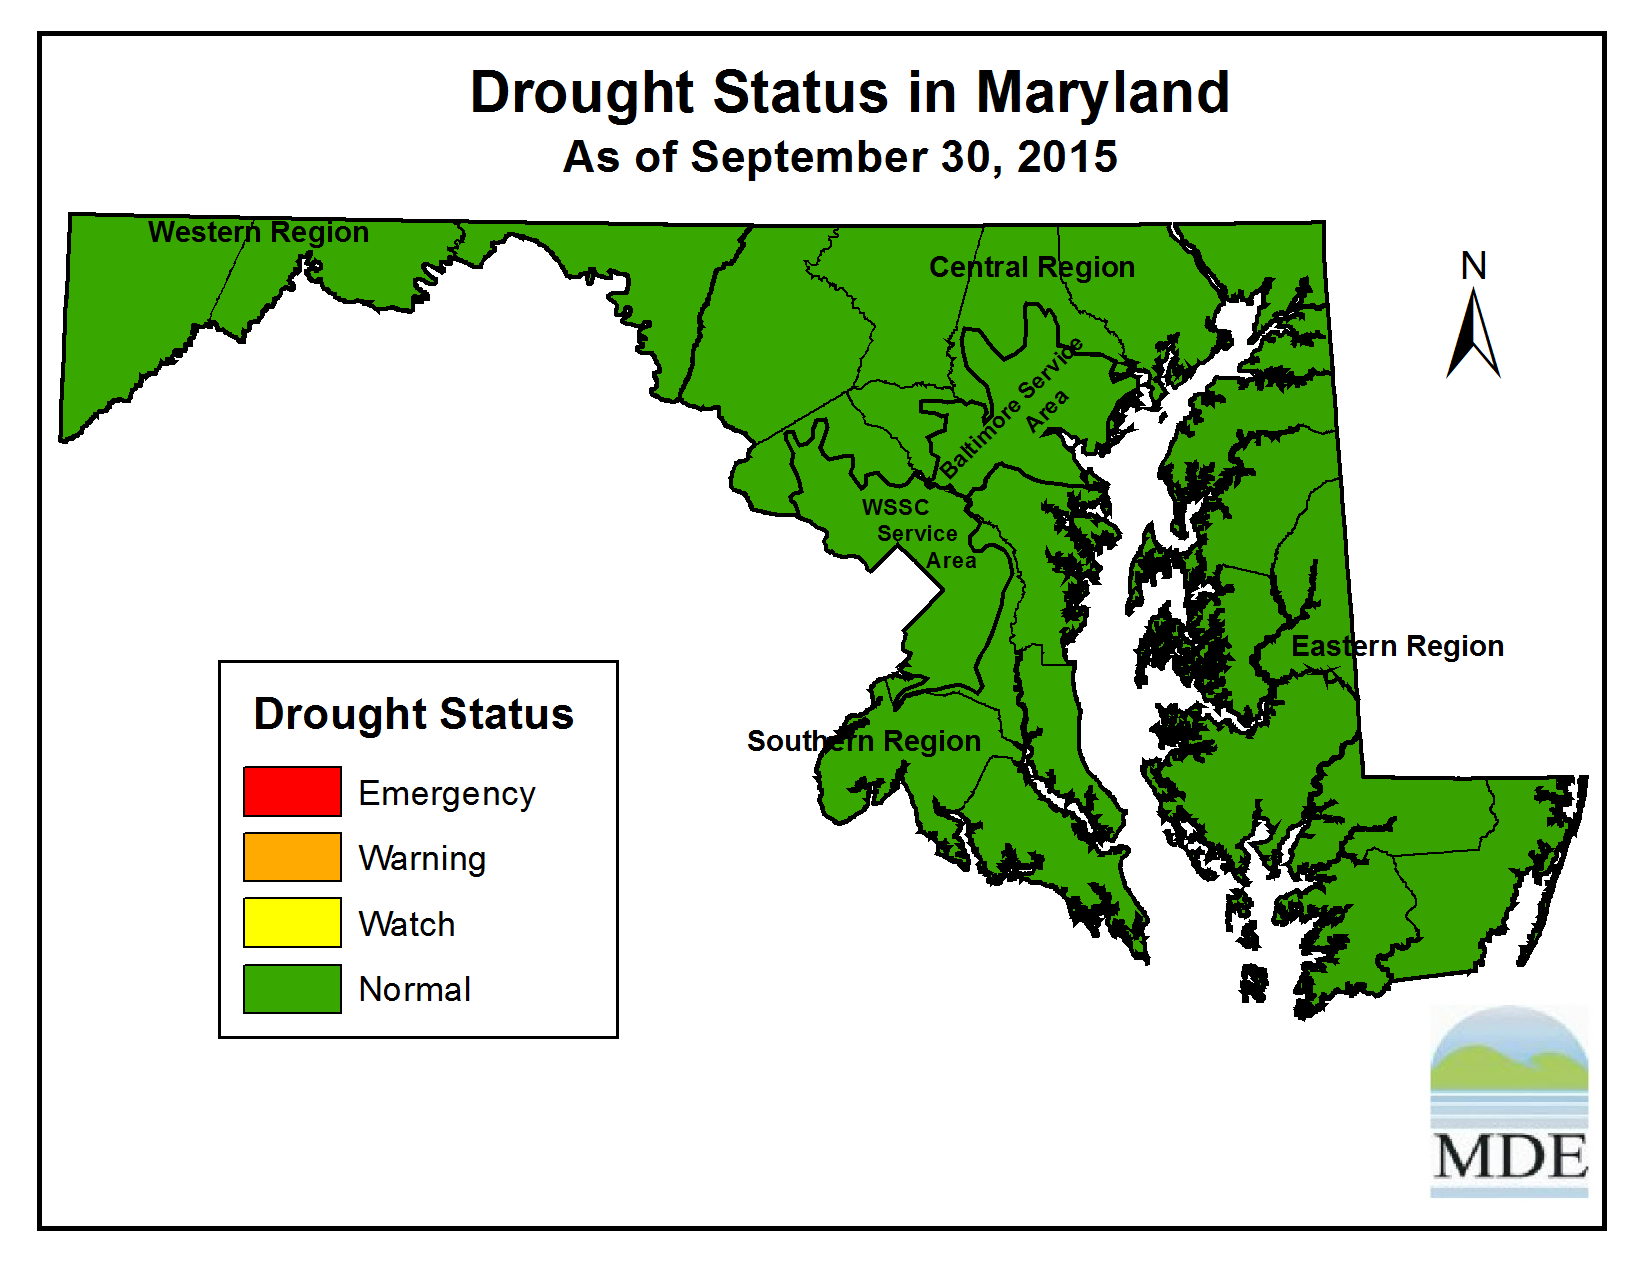 Drought Status as of September 30, 2015